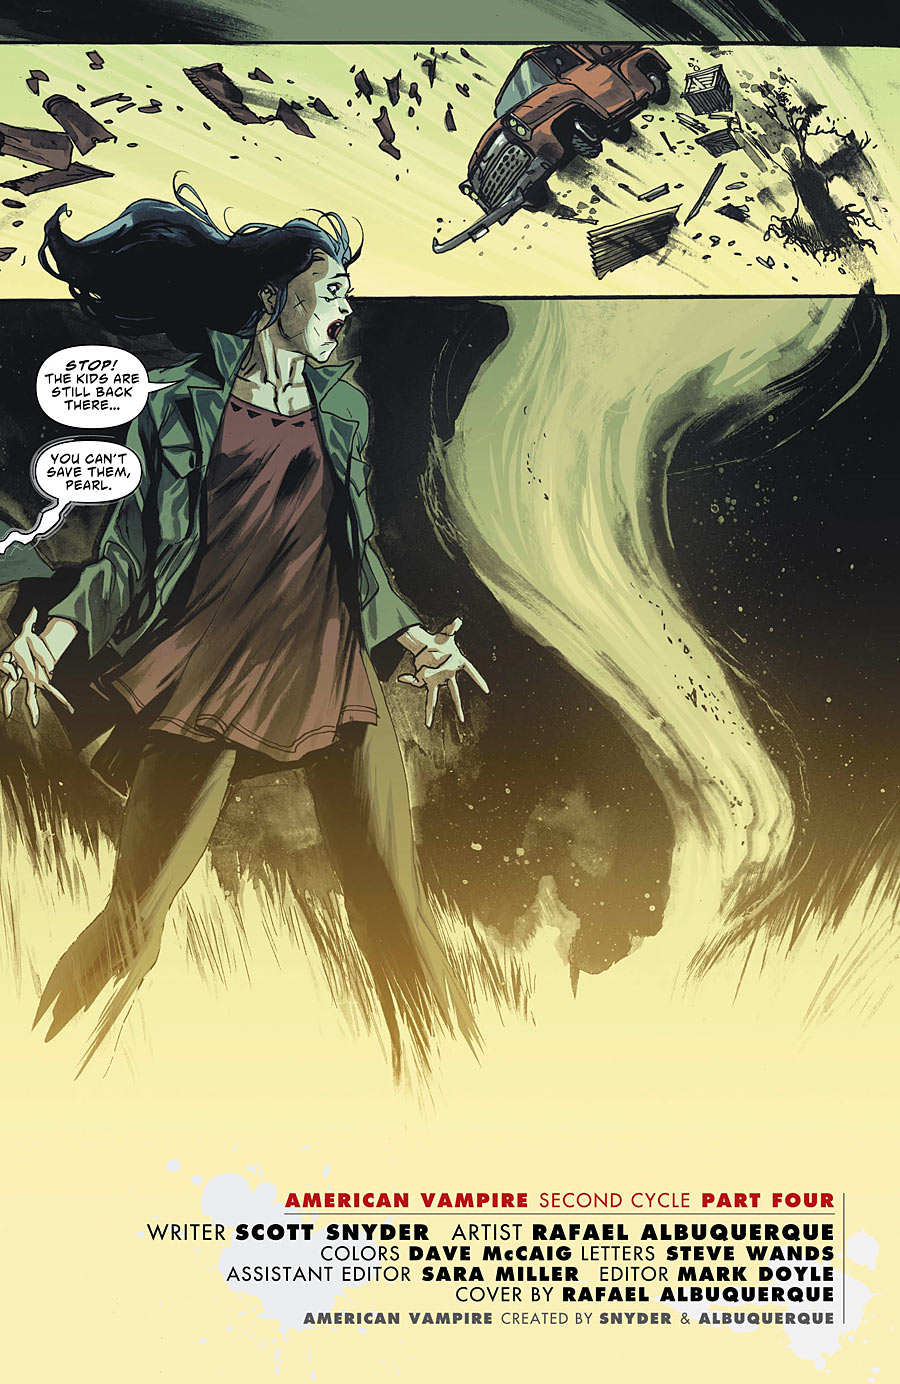 American Vampire Second Cycle #4 preview